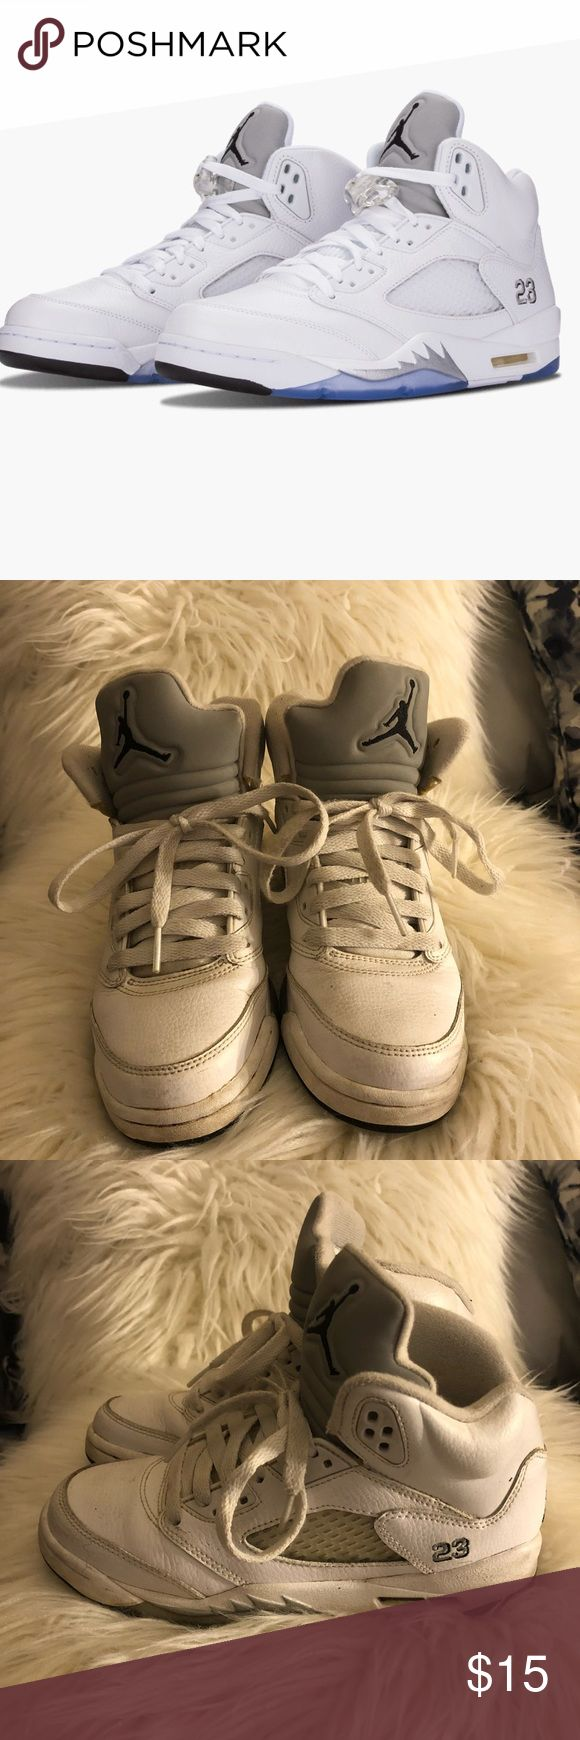 Jordan retro 5 Retro 5 Jordan good condition I'm not very good at cleaning sneakers scratchers shown on last picture Air Jordan Shoes Sneakers